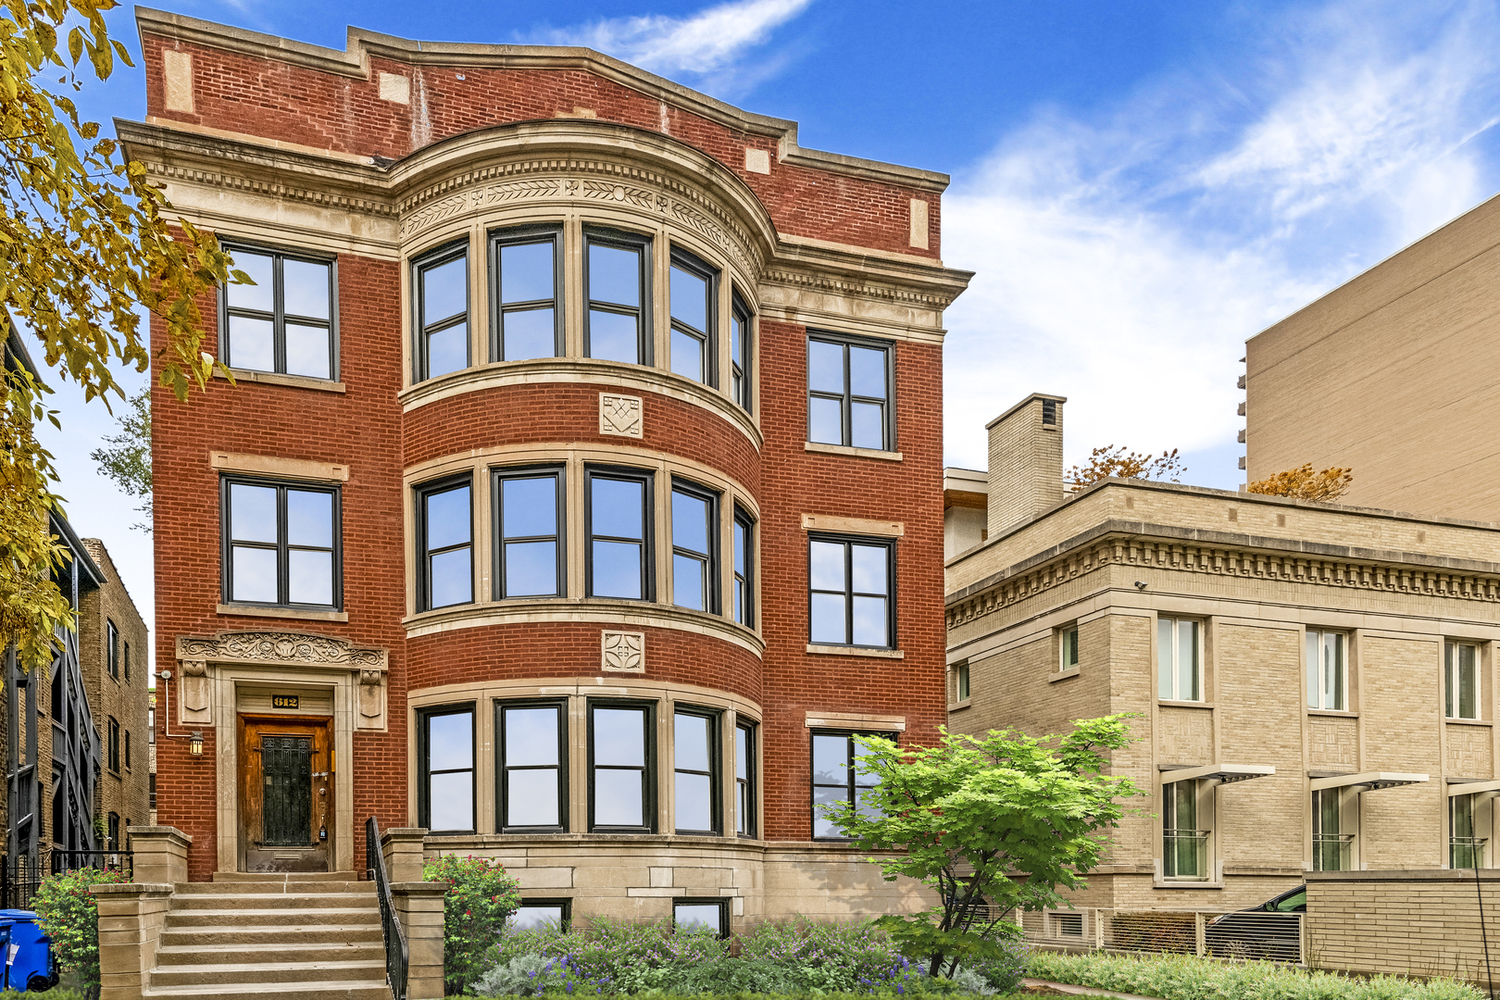 612 West Stratford Place, Unit 3 Chicago, IL 60657